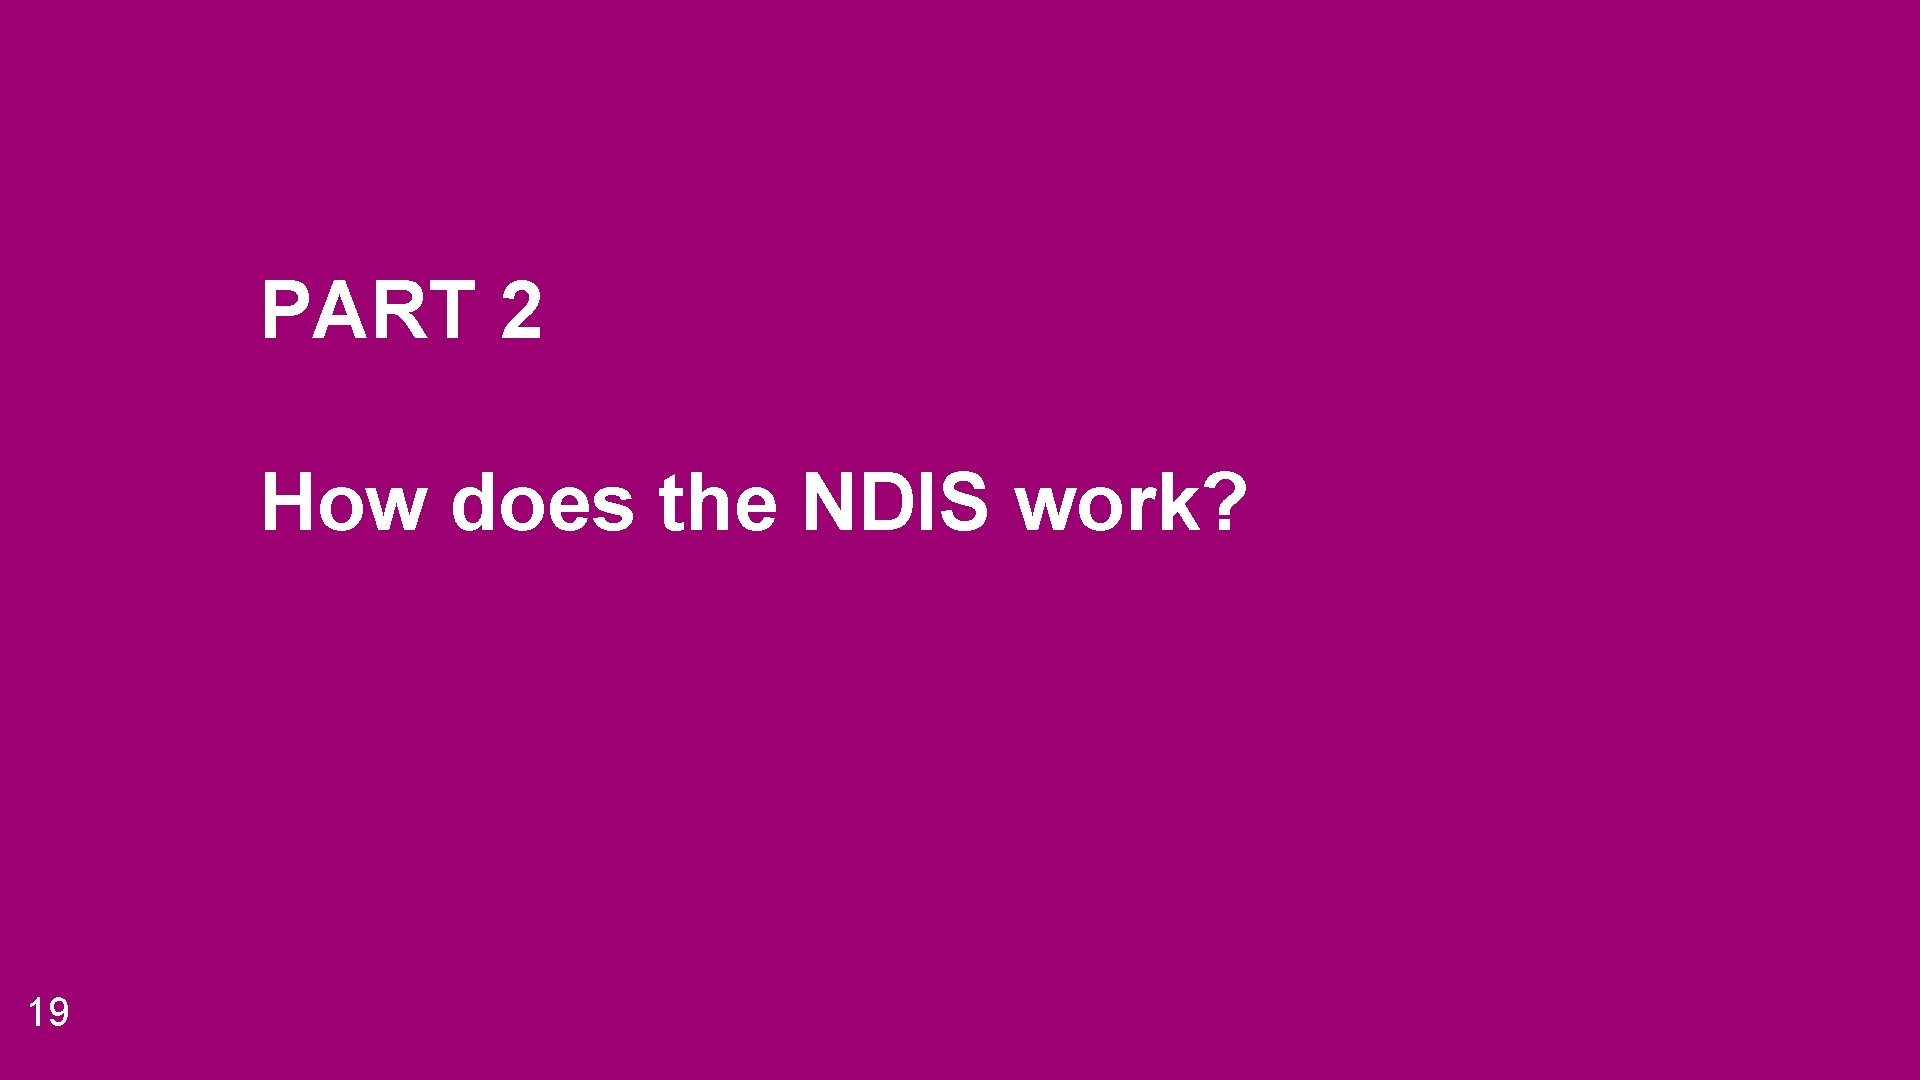 PART 2 How does the NDIS work? 19